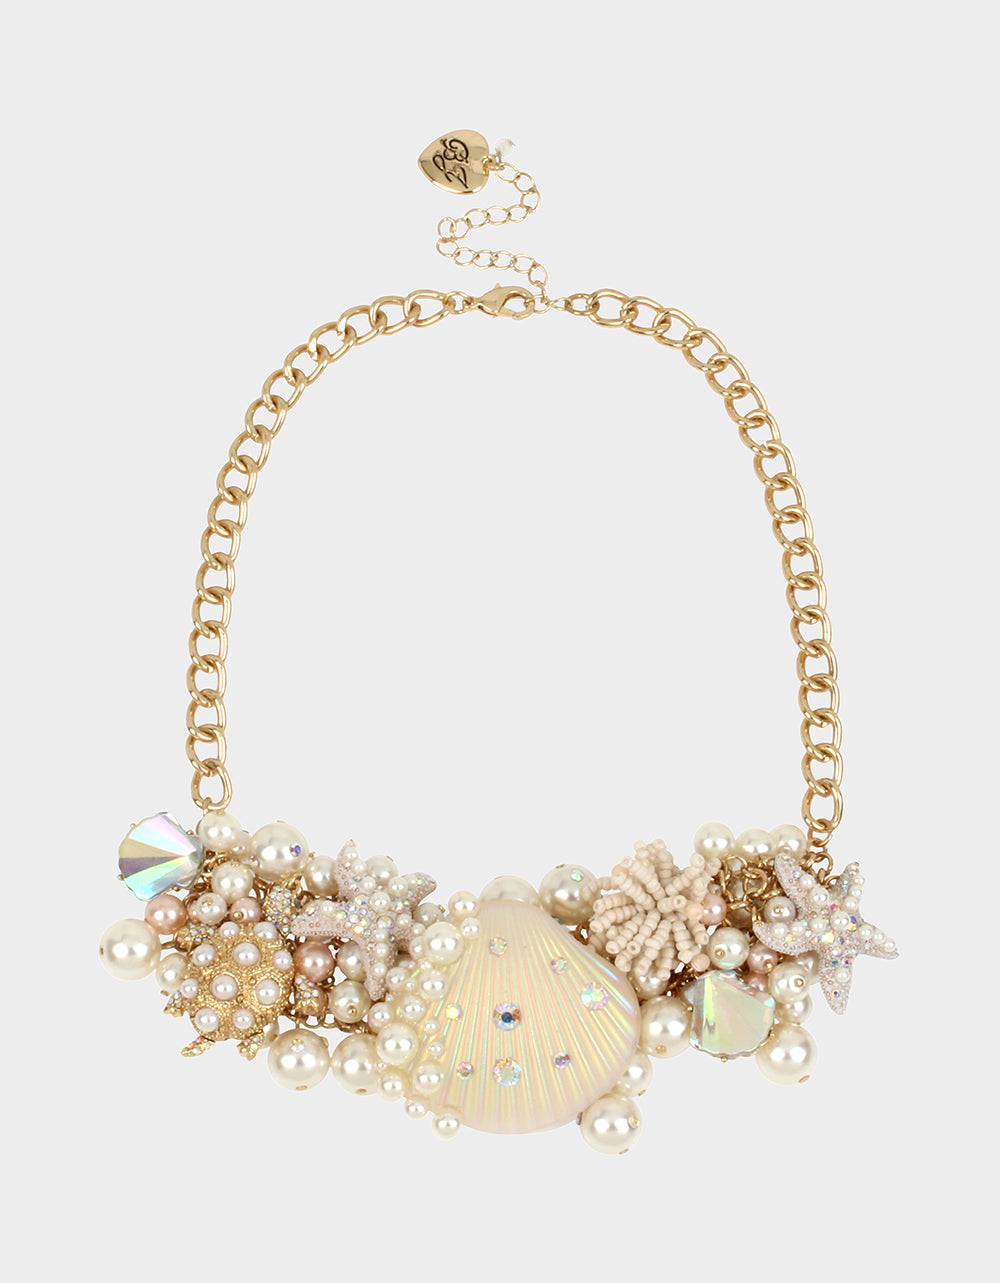 SURFMAID STATEMENT NECKLACE PINK - JEWELRY - Betsey Johnson